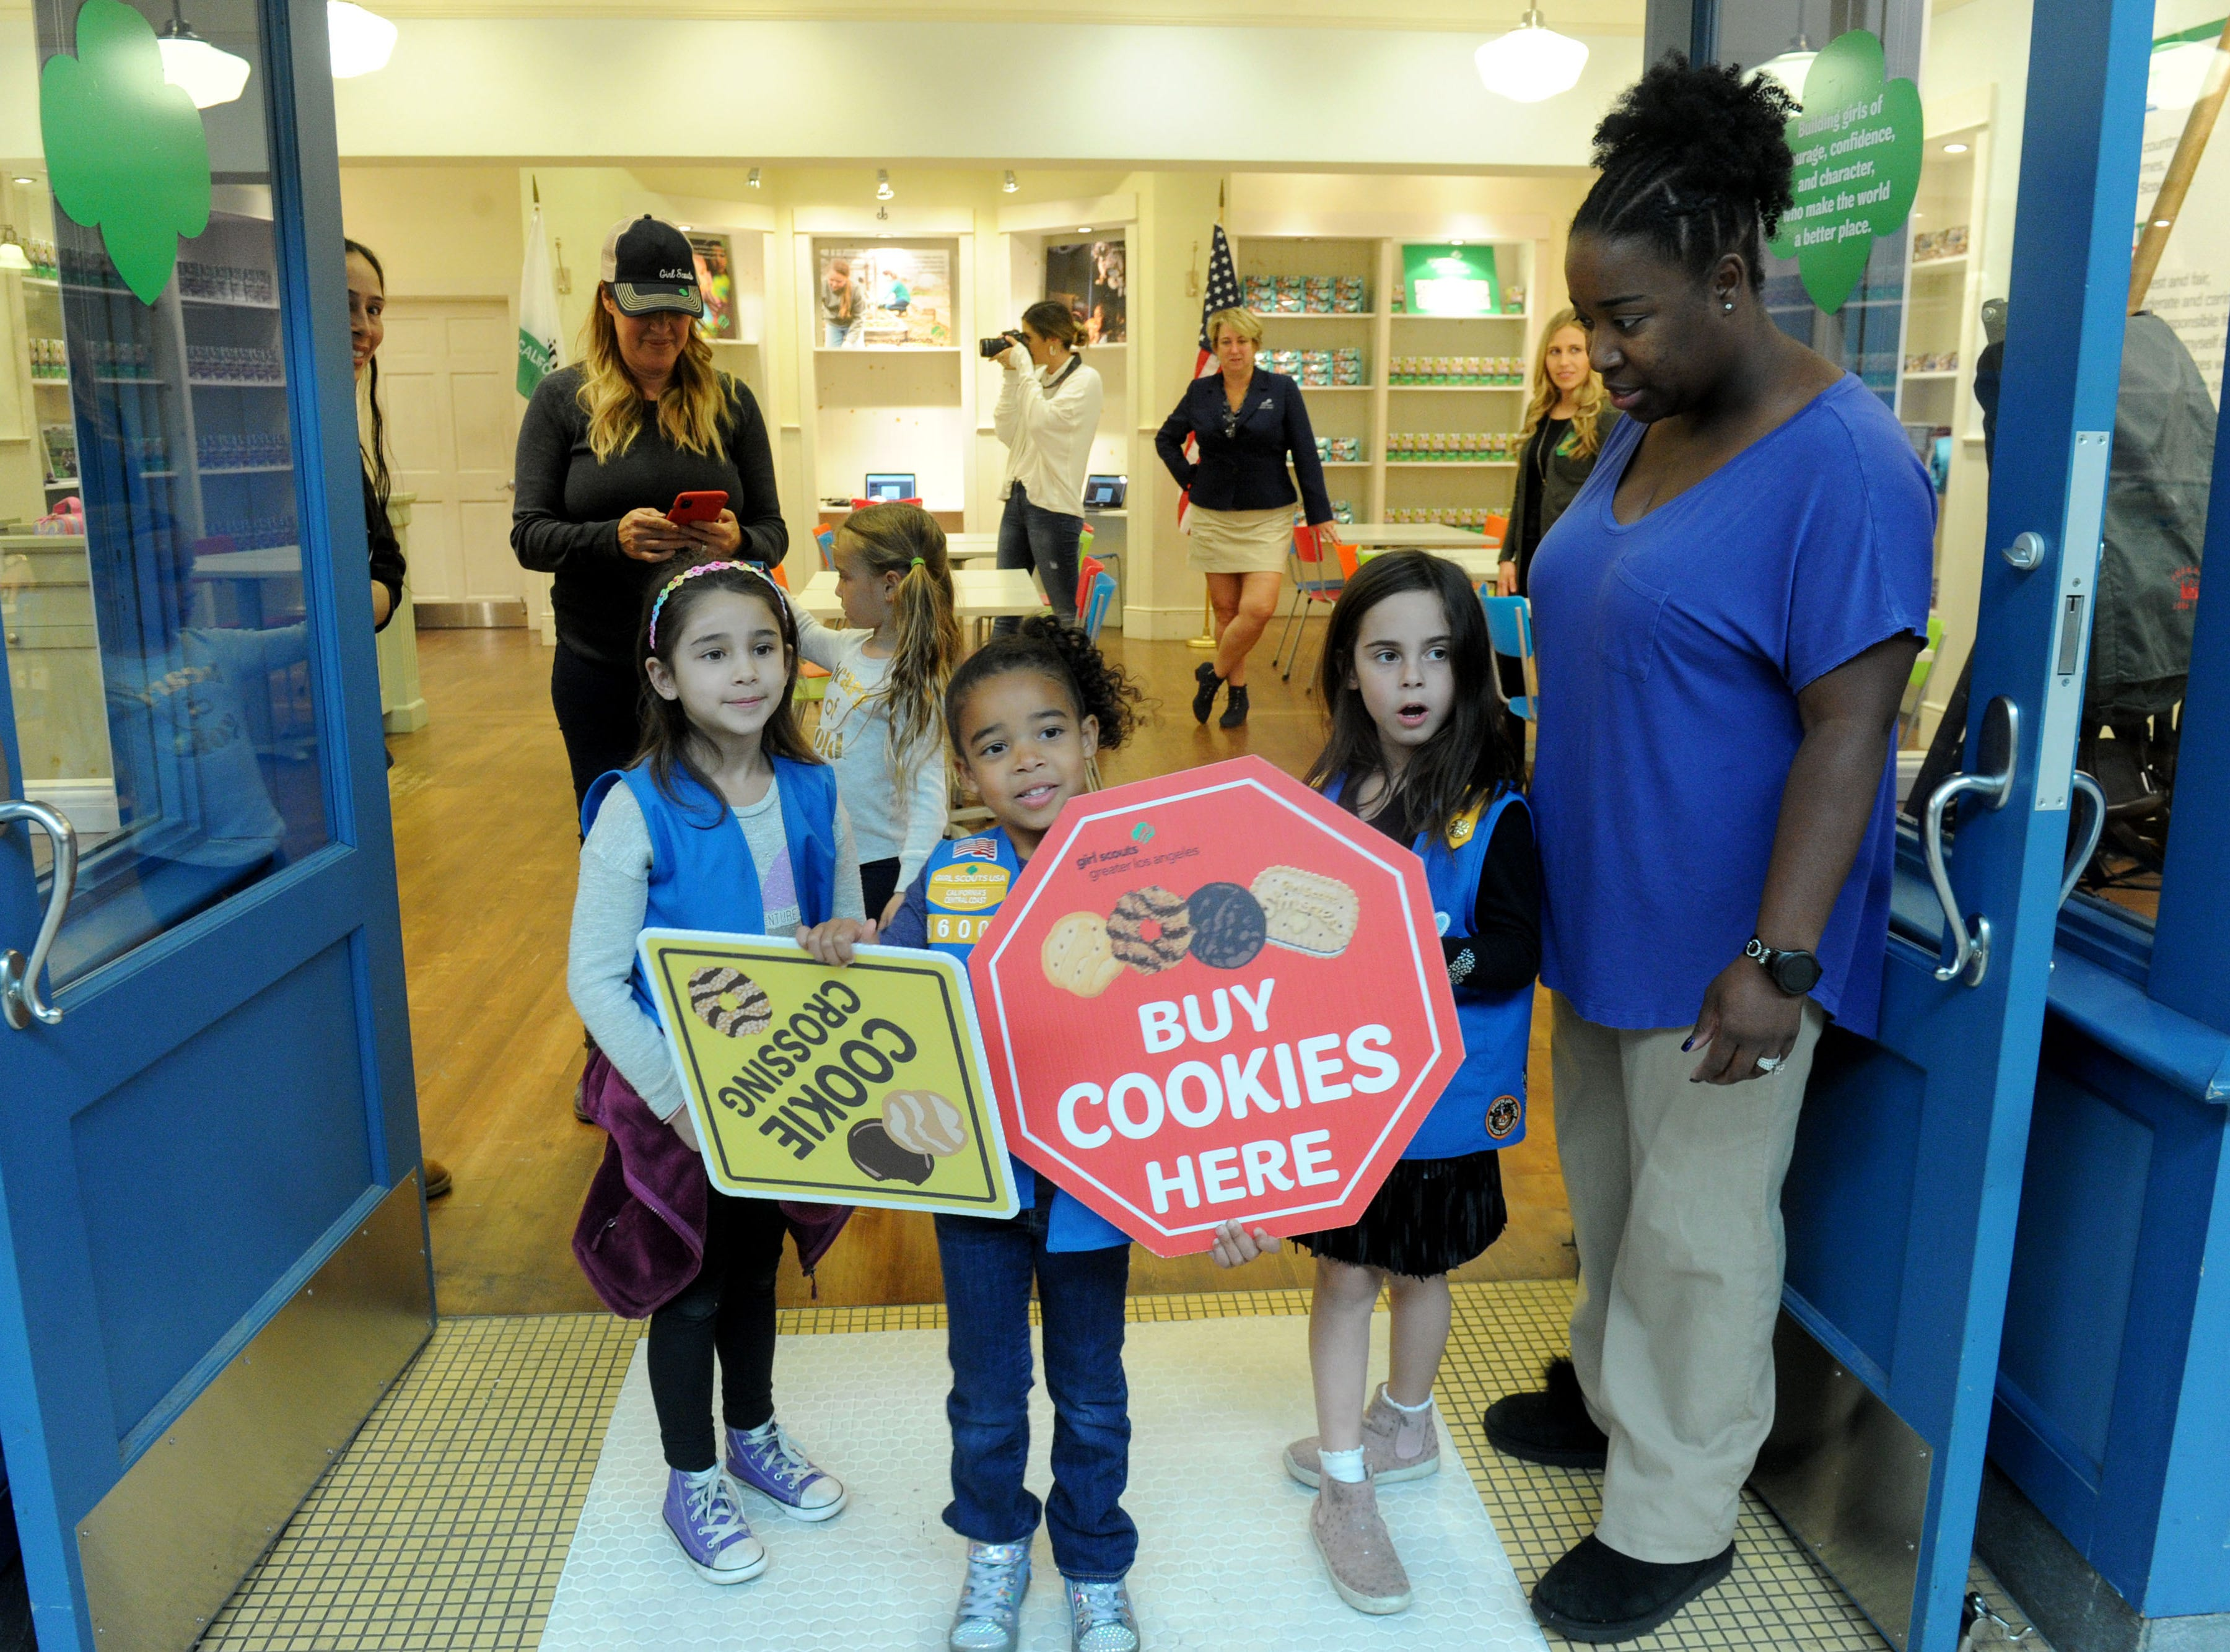 From left, Talia Pannier, Tamia Bragar, Madison Richards and Etevia Bragar stand near the door to attract Girl Scout cookie customers at The Oaks mall. The storefront is operating under the Girl Scouts of California's Central Coast.